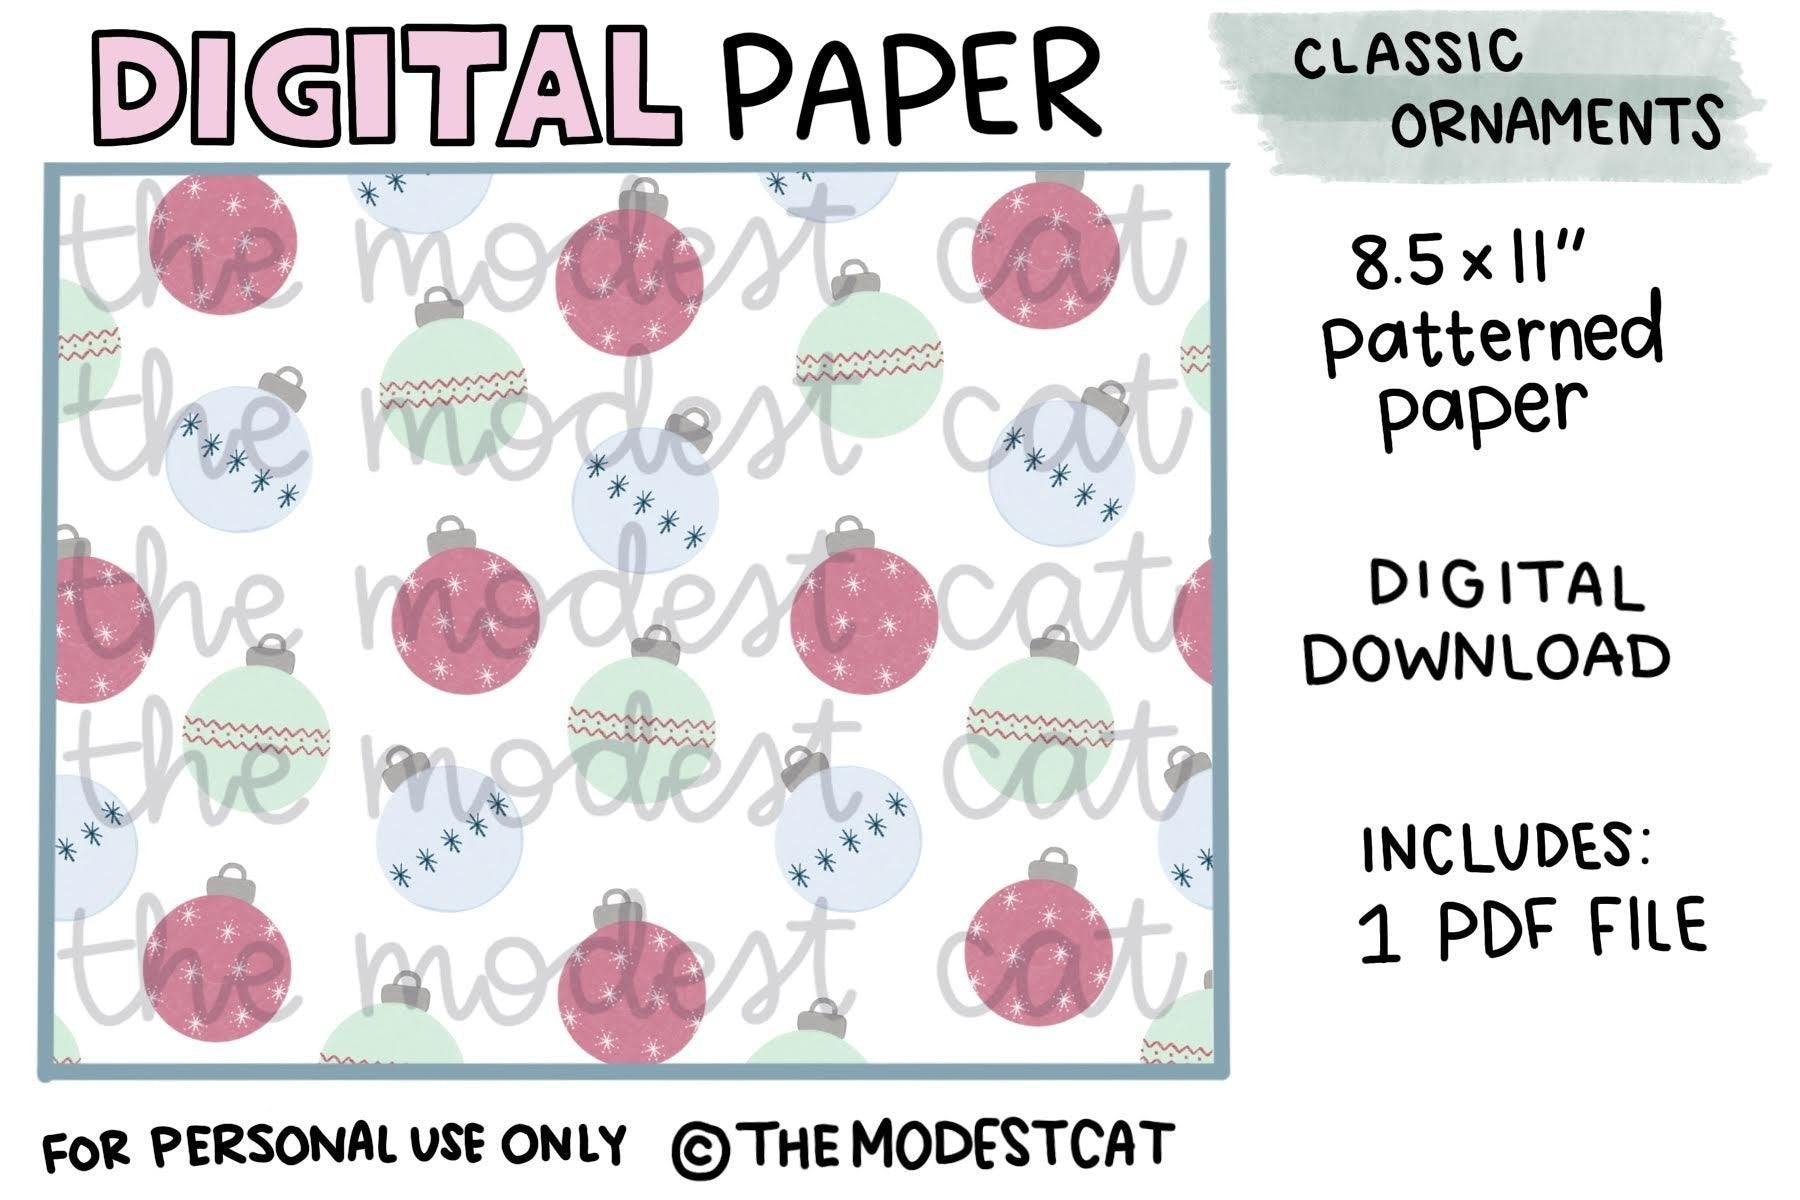 Christmas Ornaments Patterned Paper - Digital Download